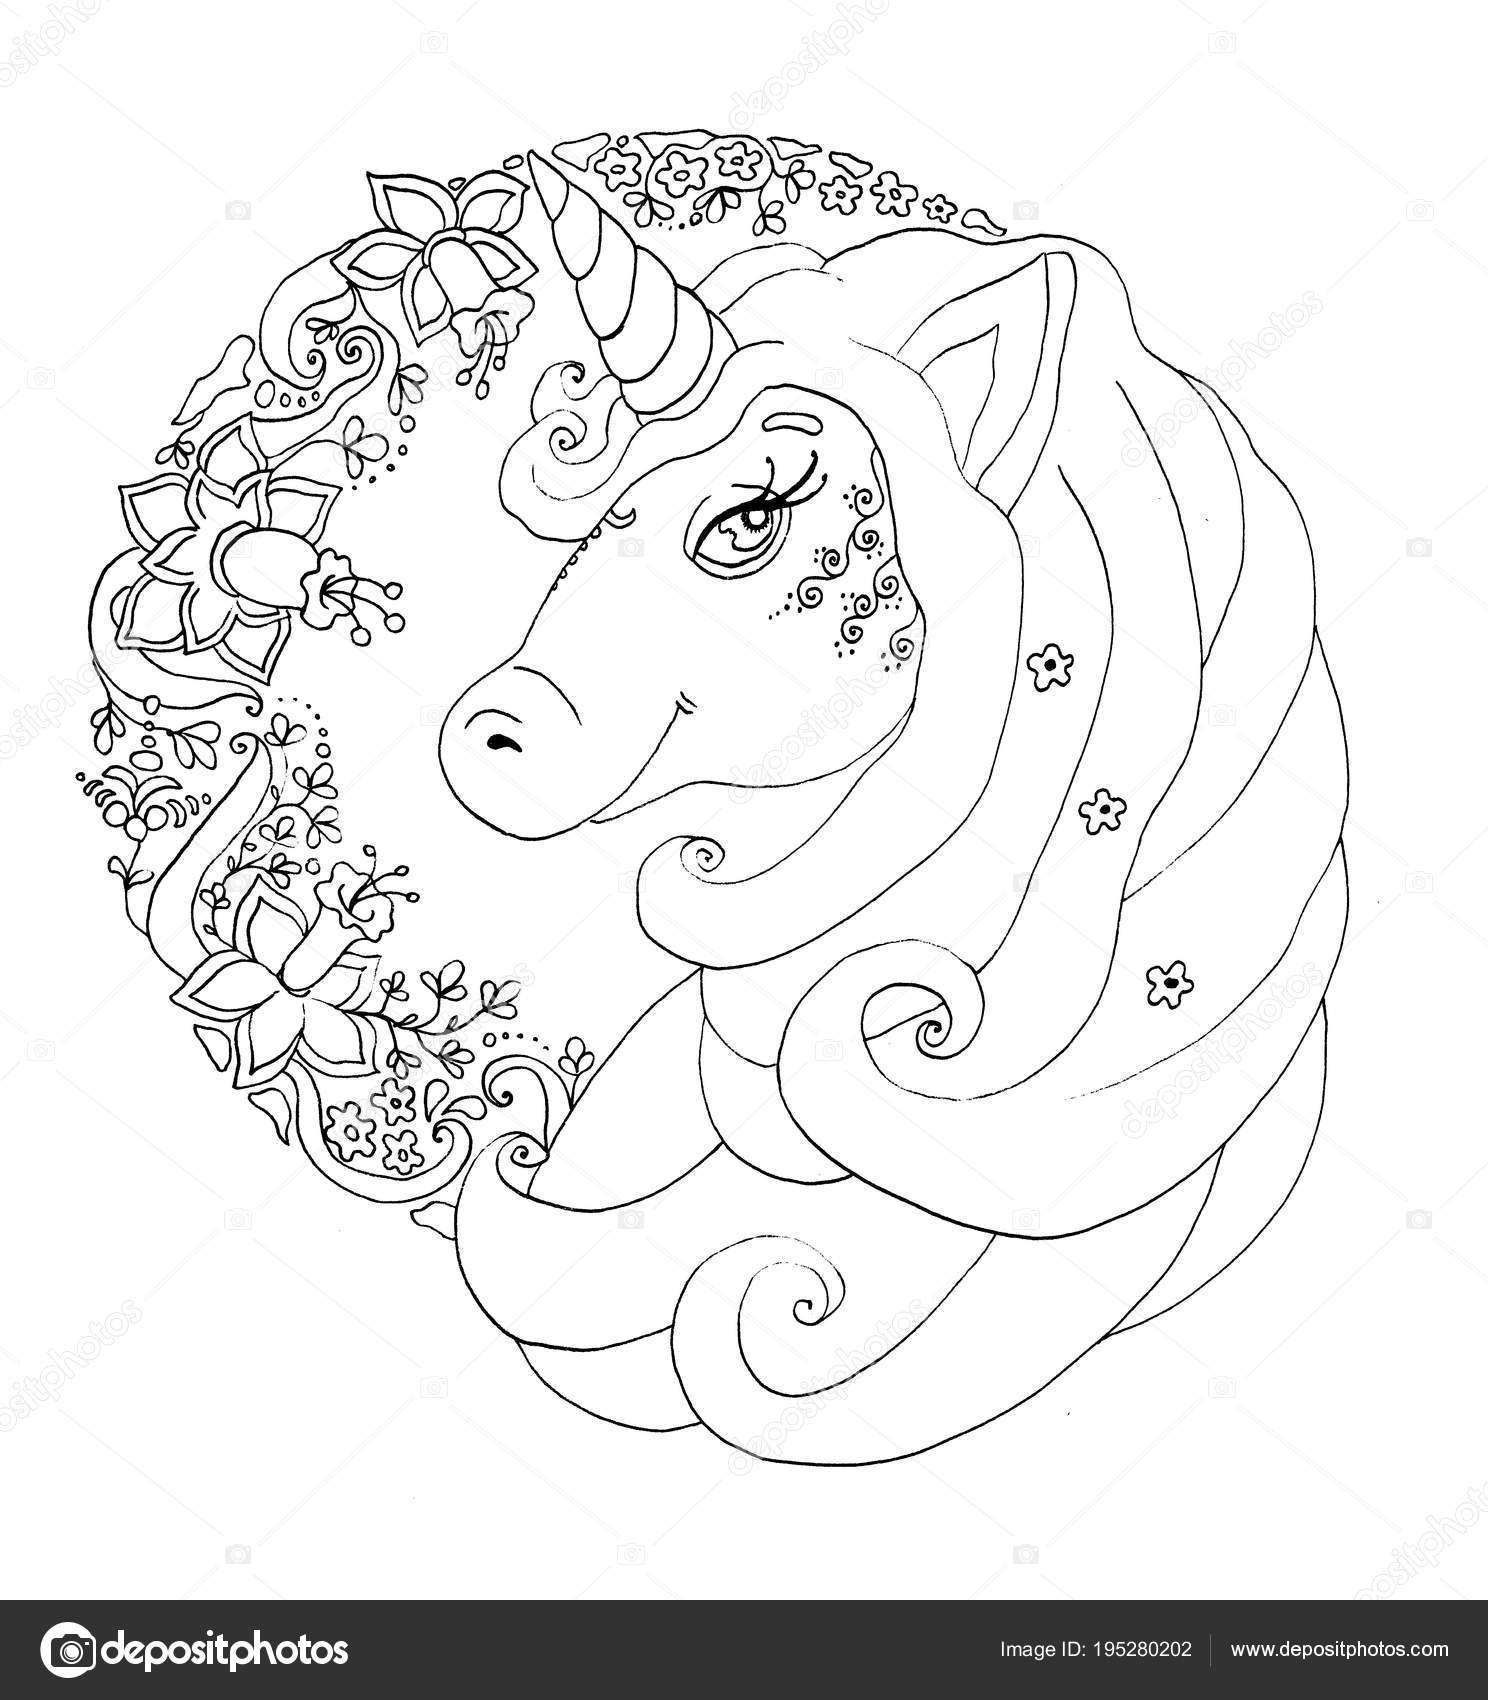 unicorn portrait black and white outline coloring book page photo by katyasuresh